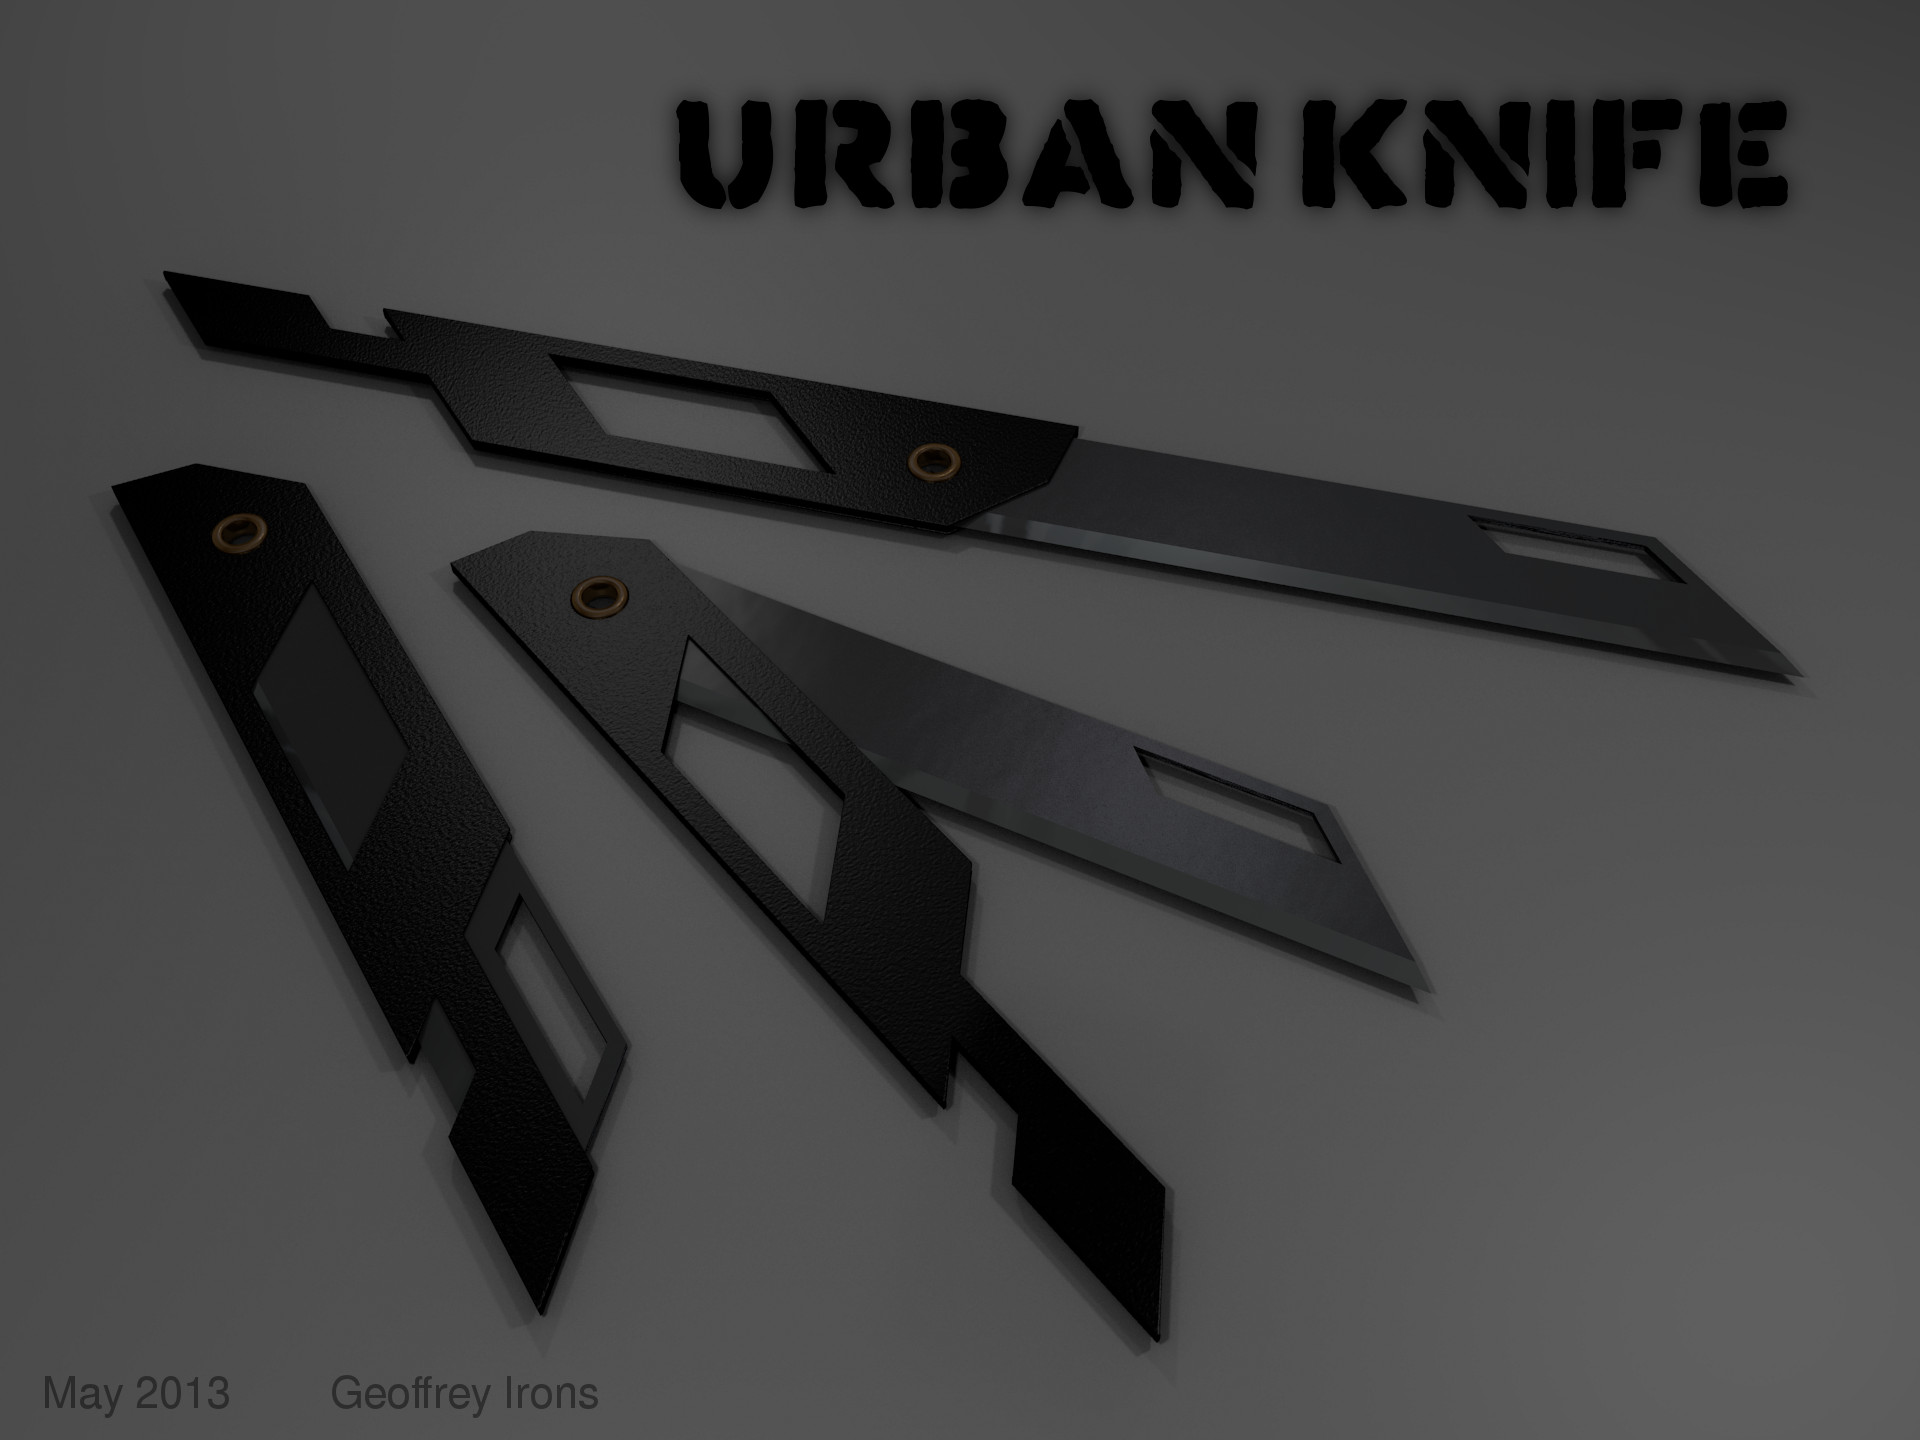 The Urban Micro-Knife